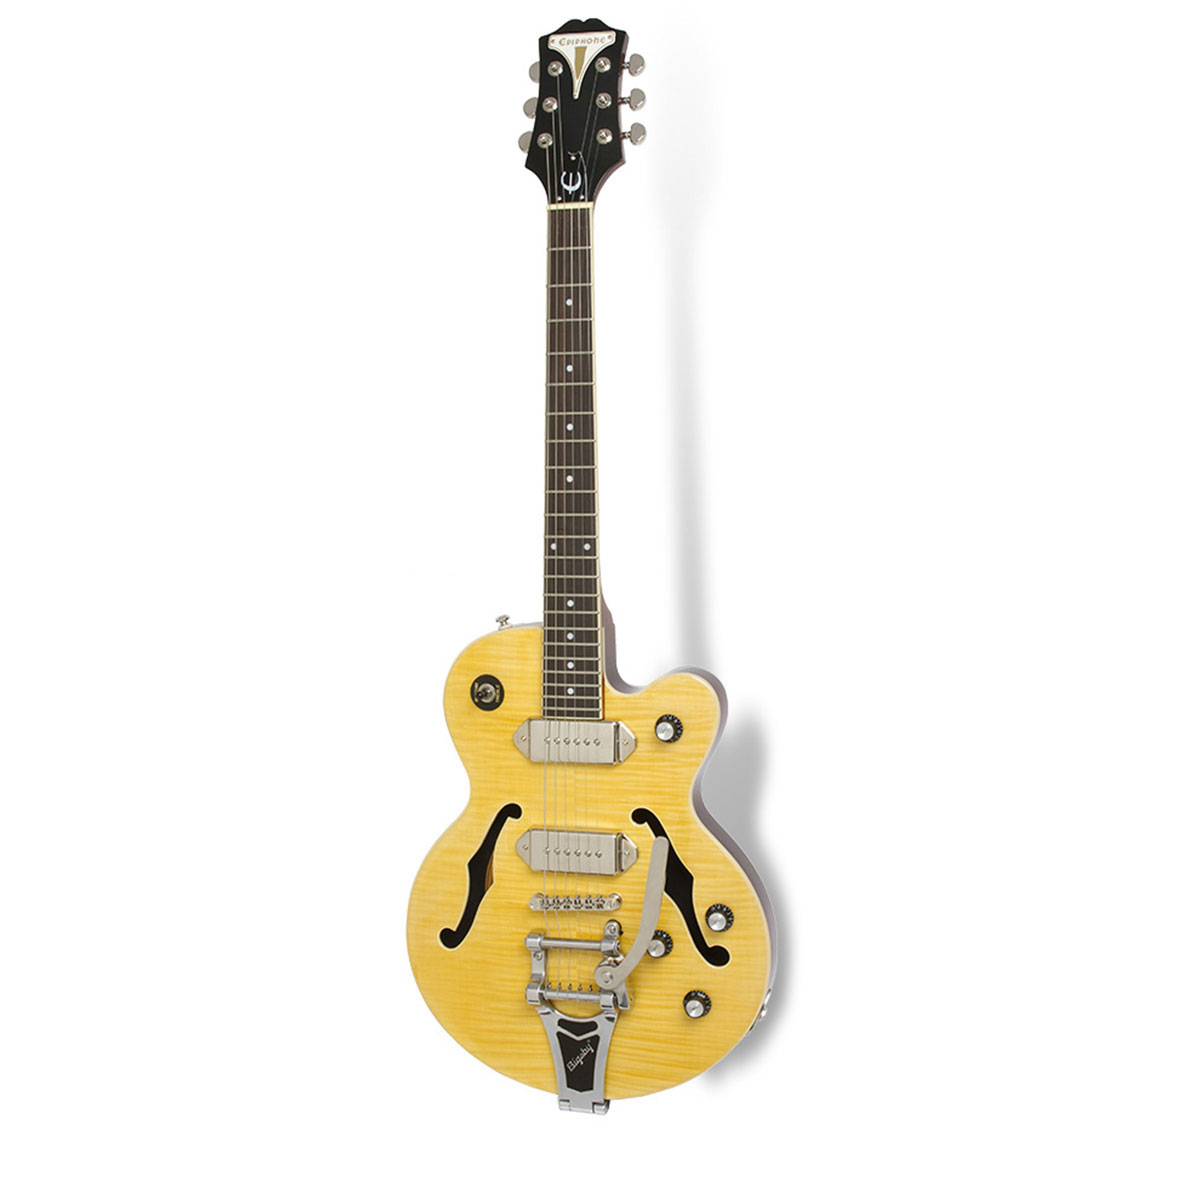 Epiphone - The Wildkat Antique naturelle